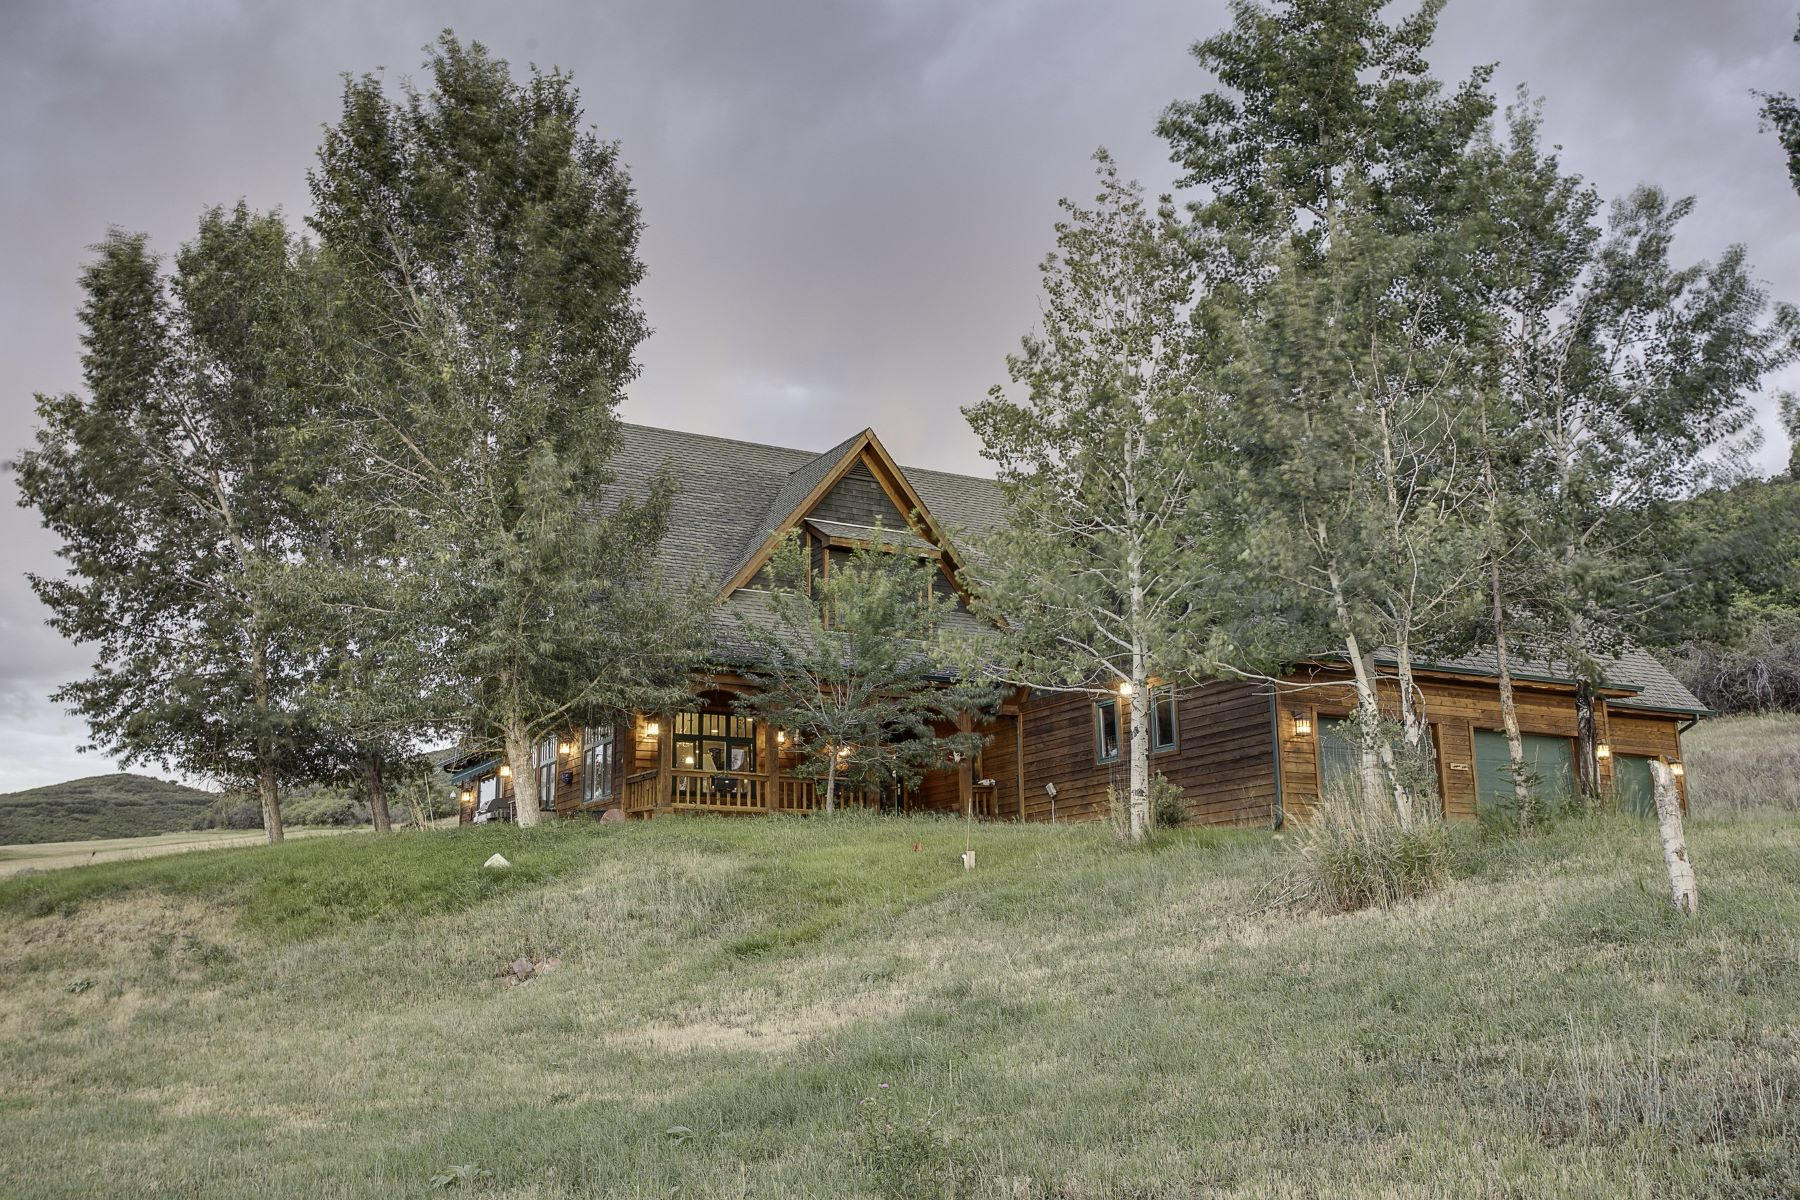 Single Family Home for Active at Faranhyll Ranch Custom Home on 35 Acres 0565 Faranhyll Ranch Road Glenwood Springs, Colorado 81601 United States